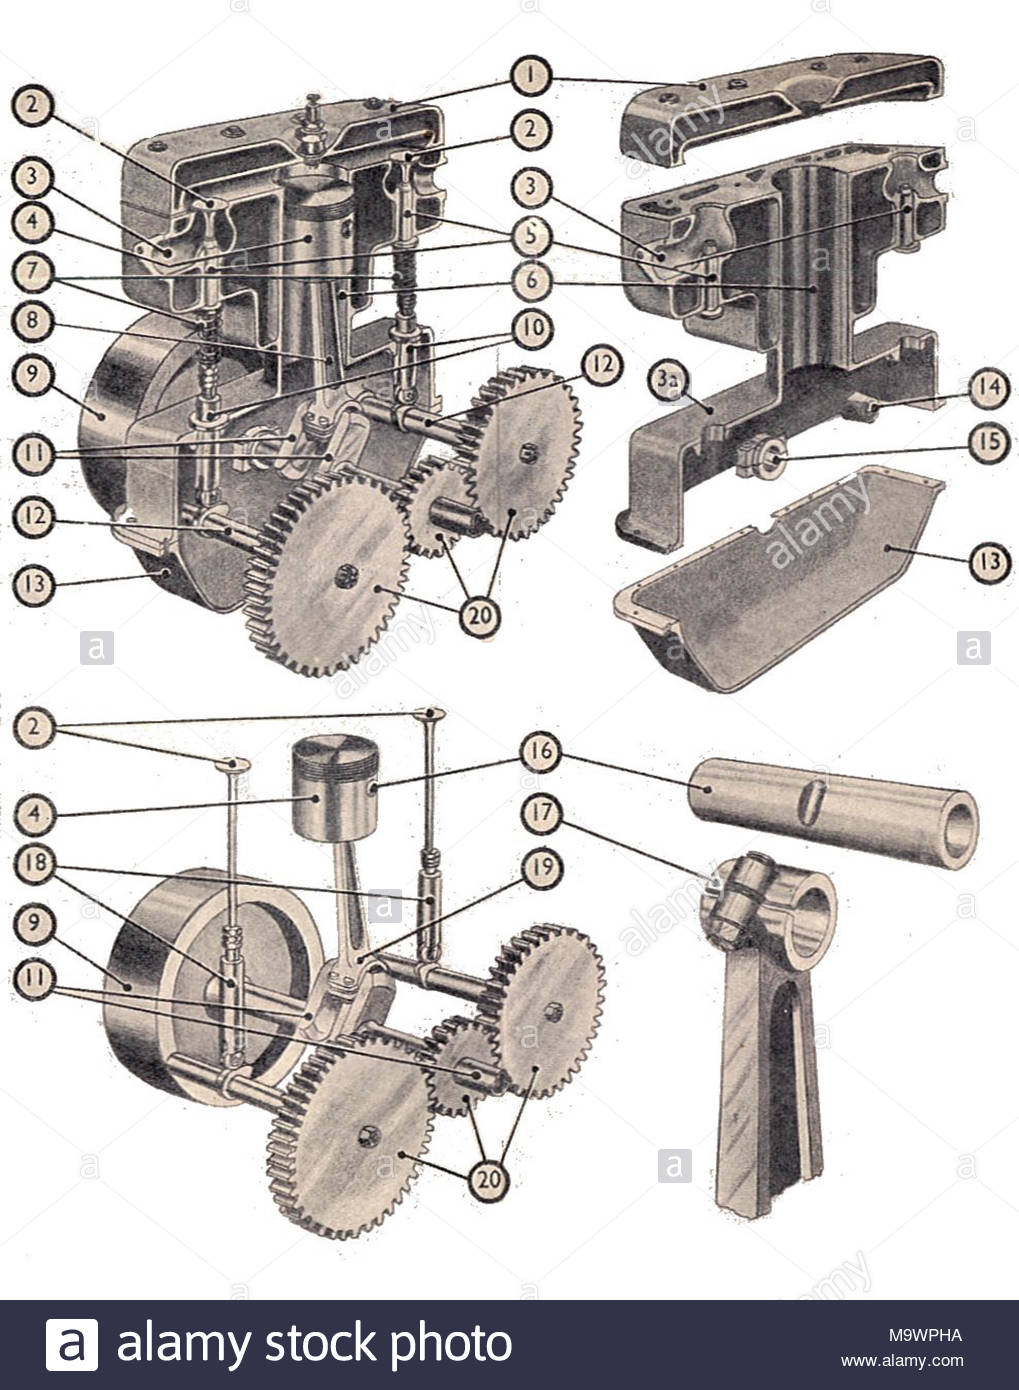 Four-stroke single-cylinder engine components (Manual of Driving and  Maintenance) .